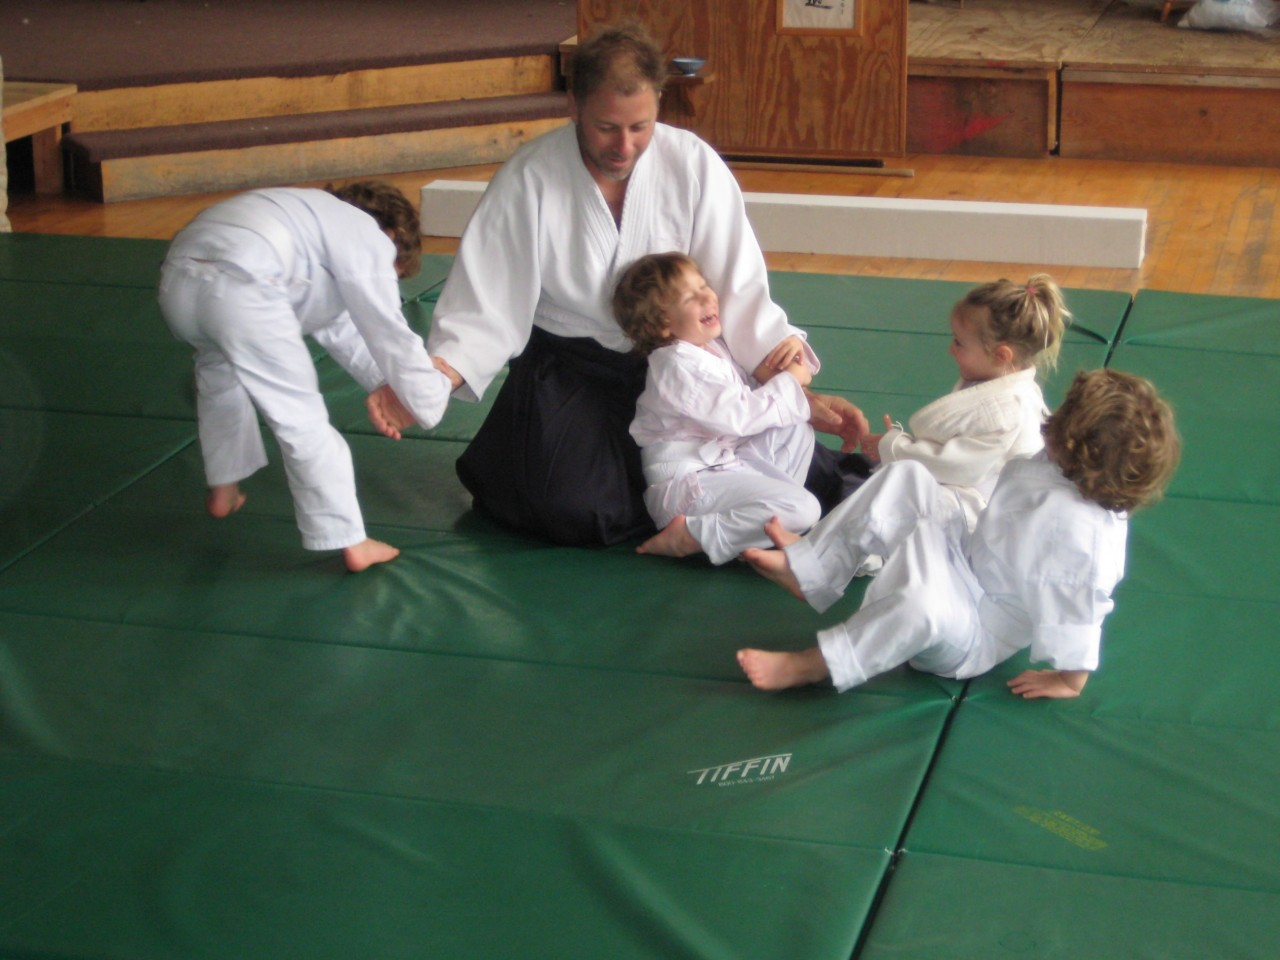 Children's Aikido - The lessons I have learned and how they have affected my own aikido